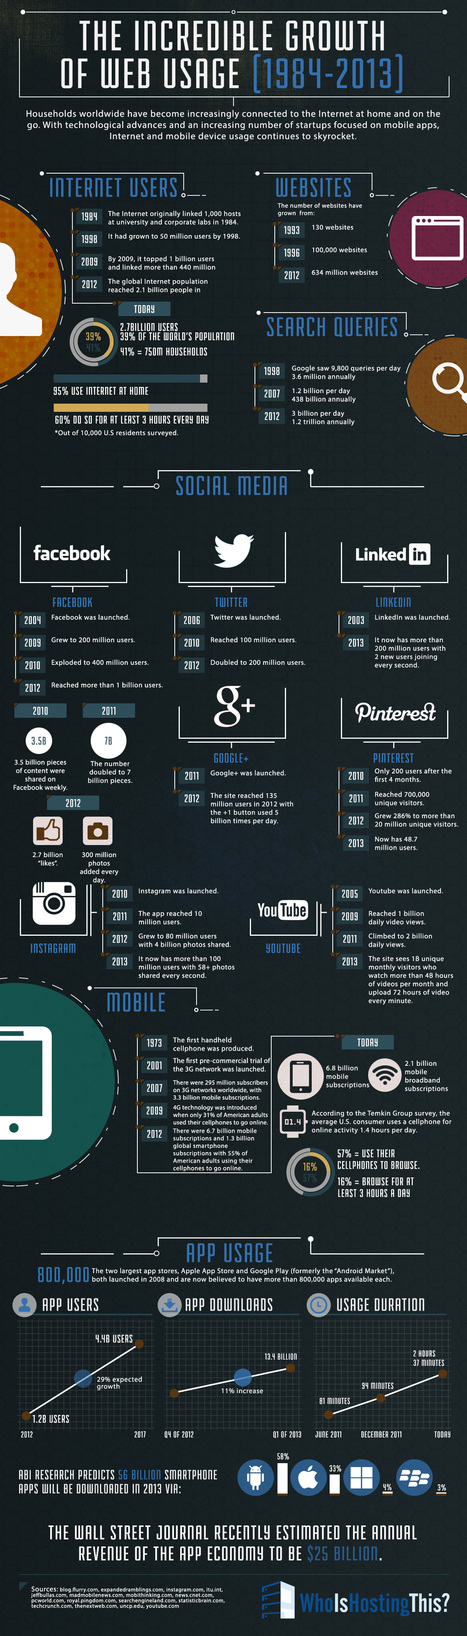 Infographic: The Incredible Growth of Web Usage [1984-2013] | Personal Branding and Professional networks | Scoop.it